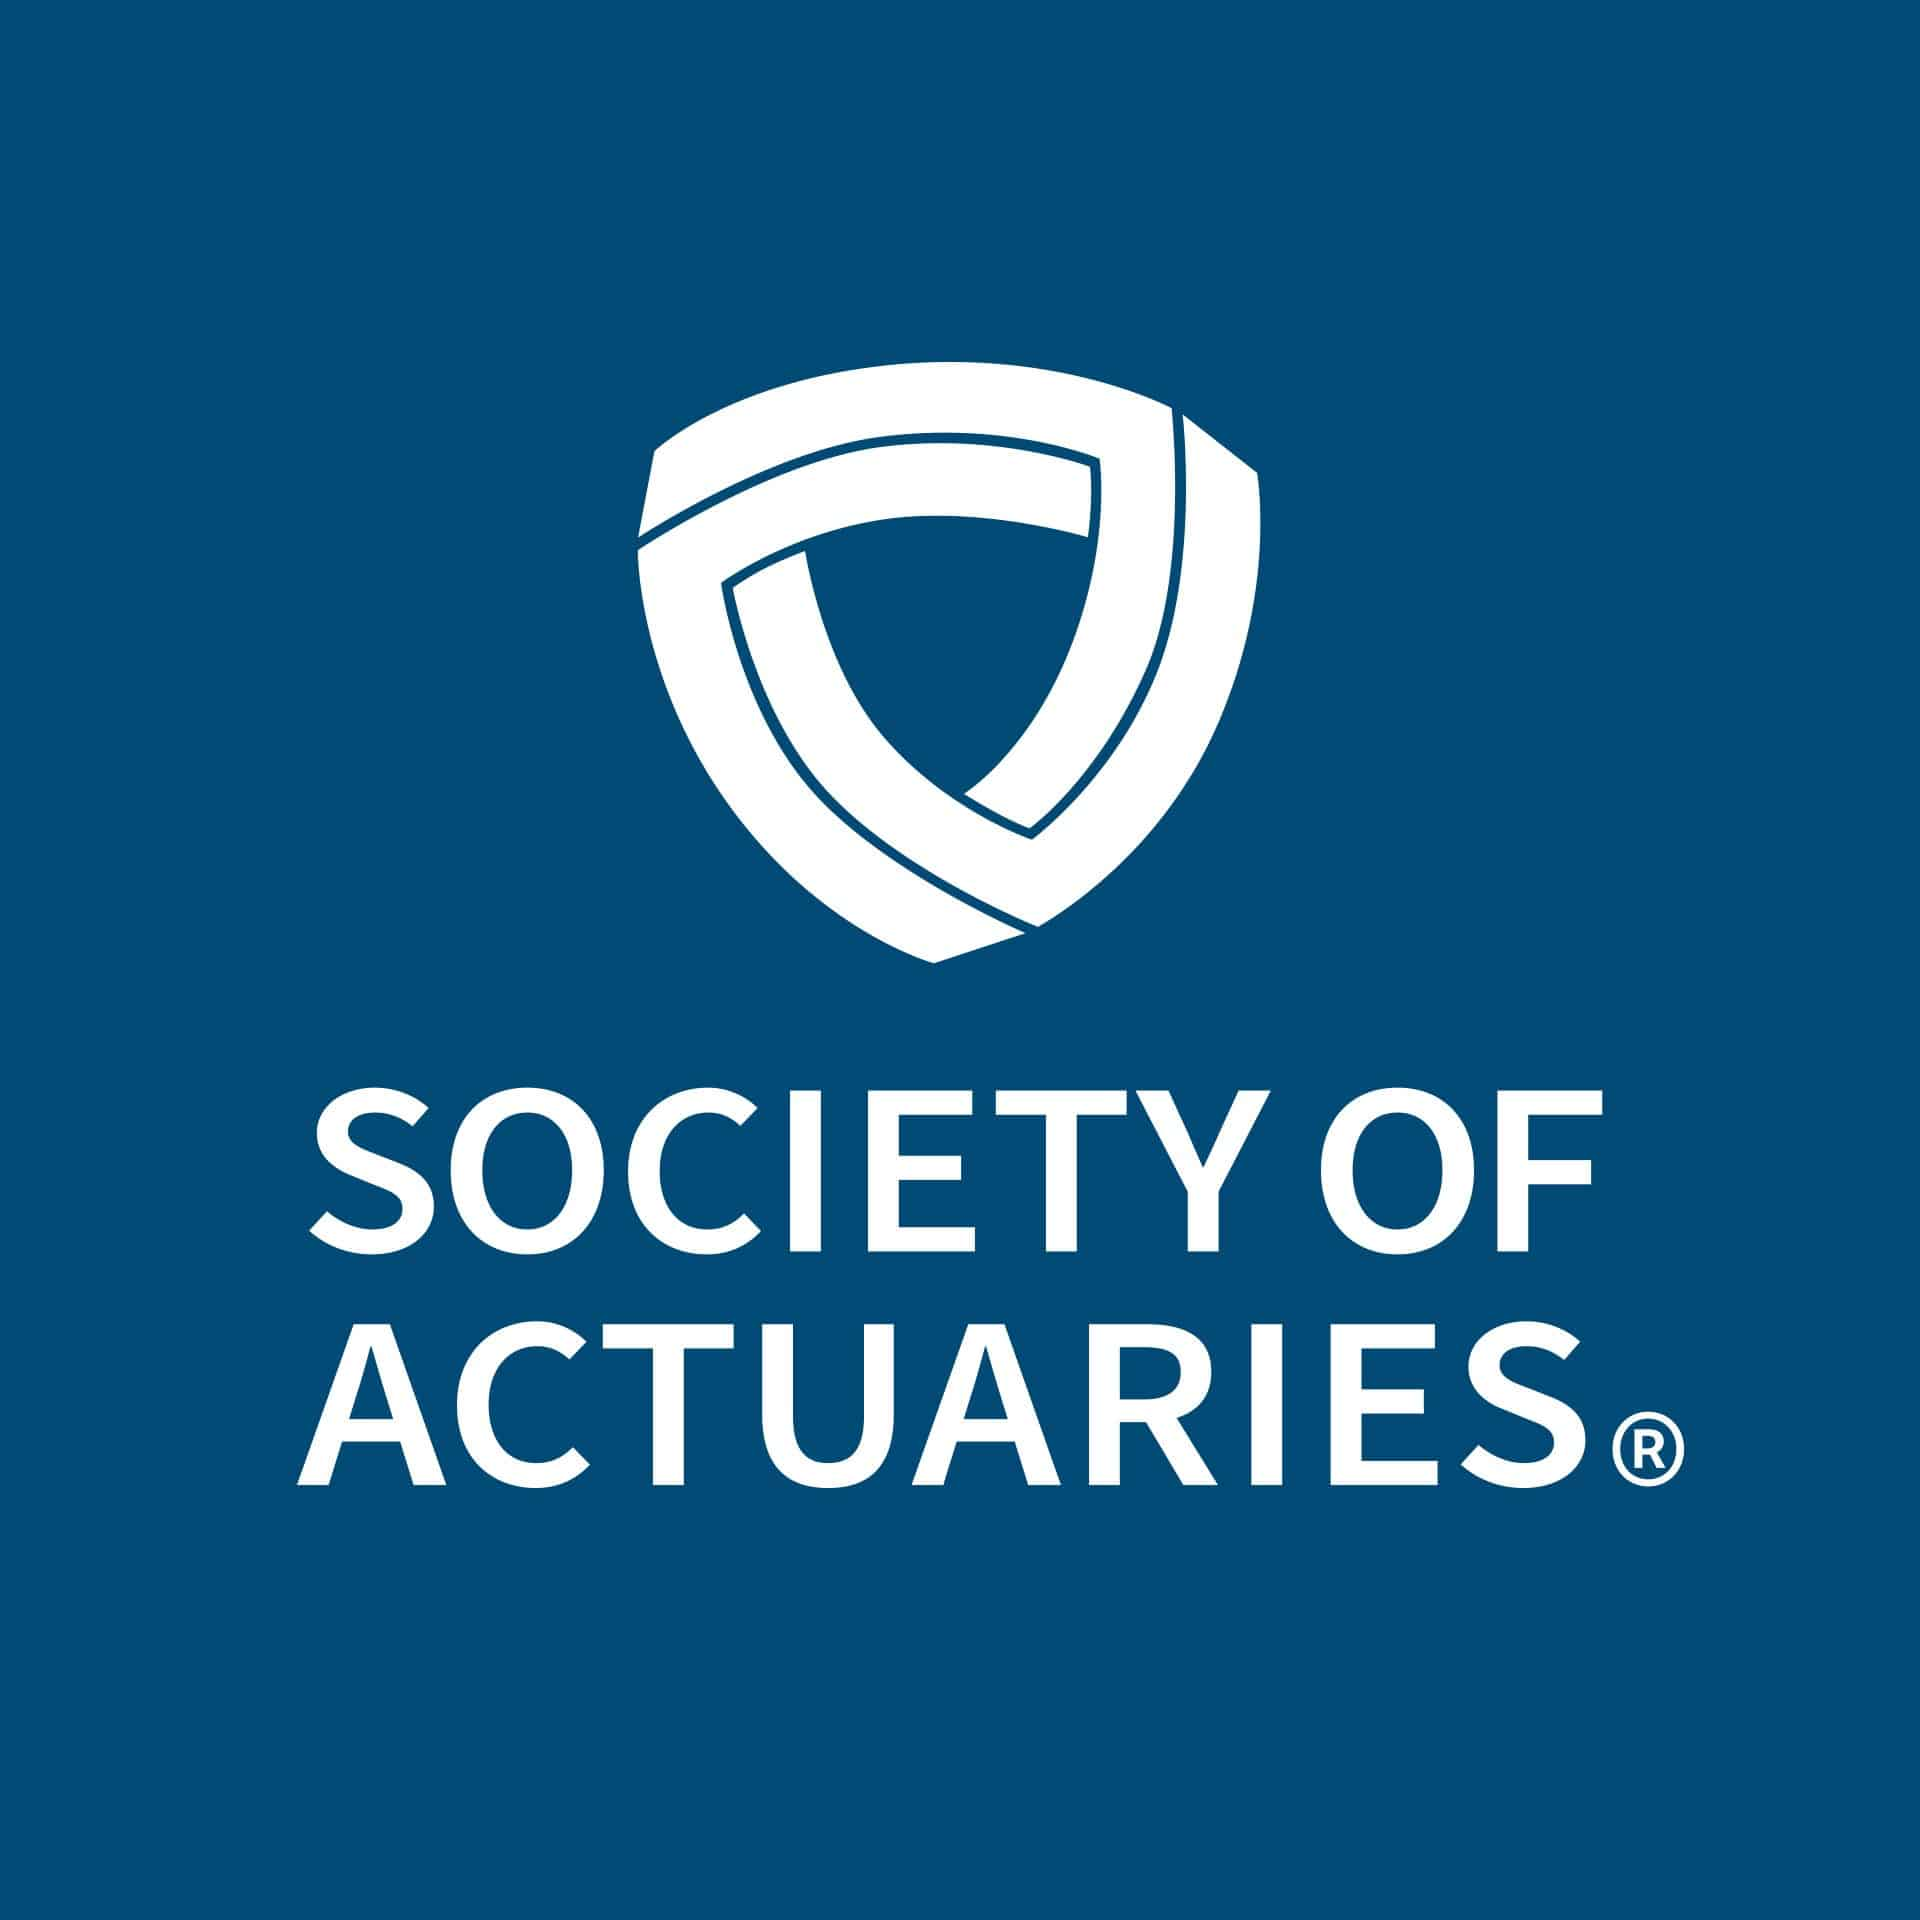 SOA declares Actuarial exams to be computer based testing (CBT)